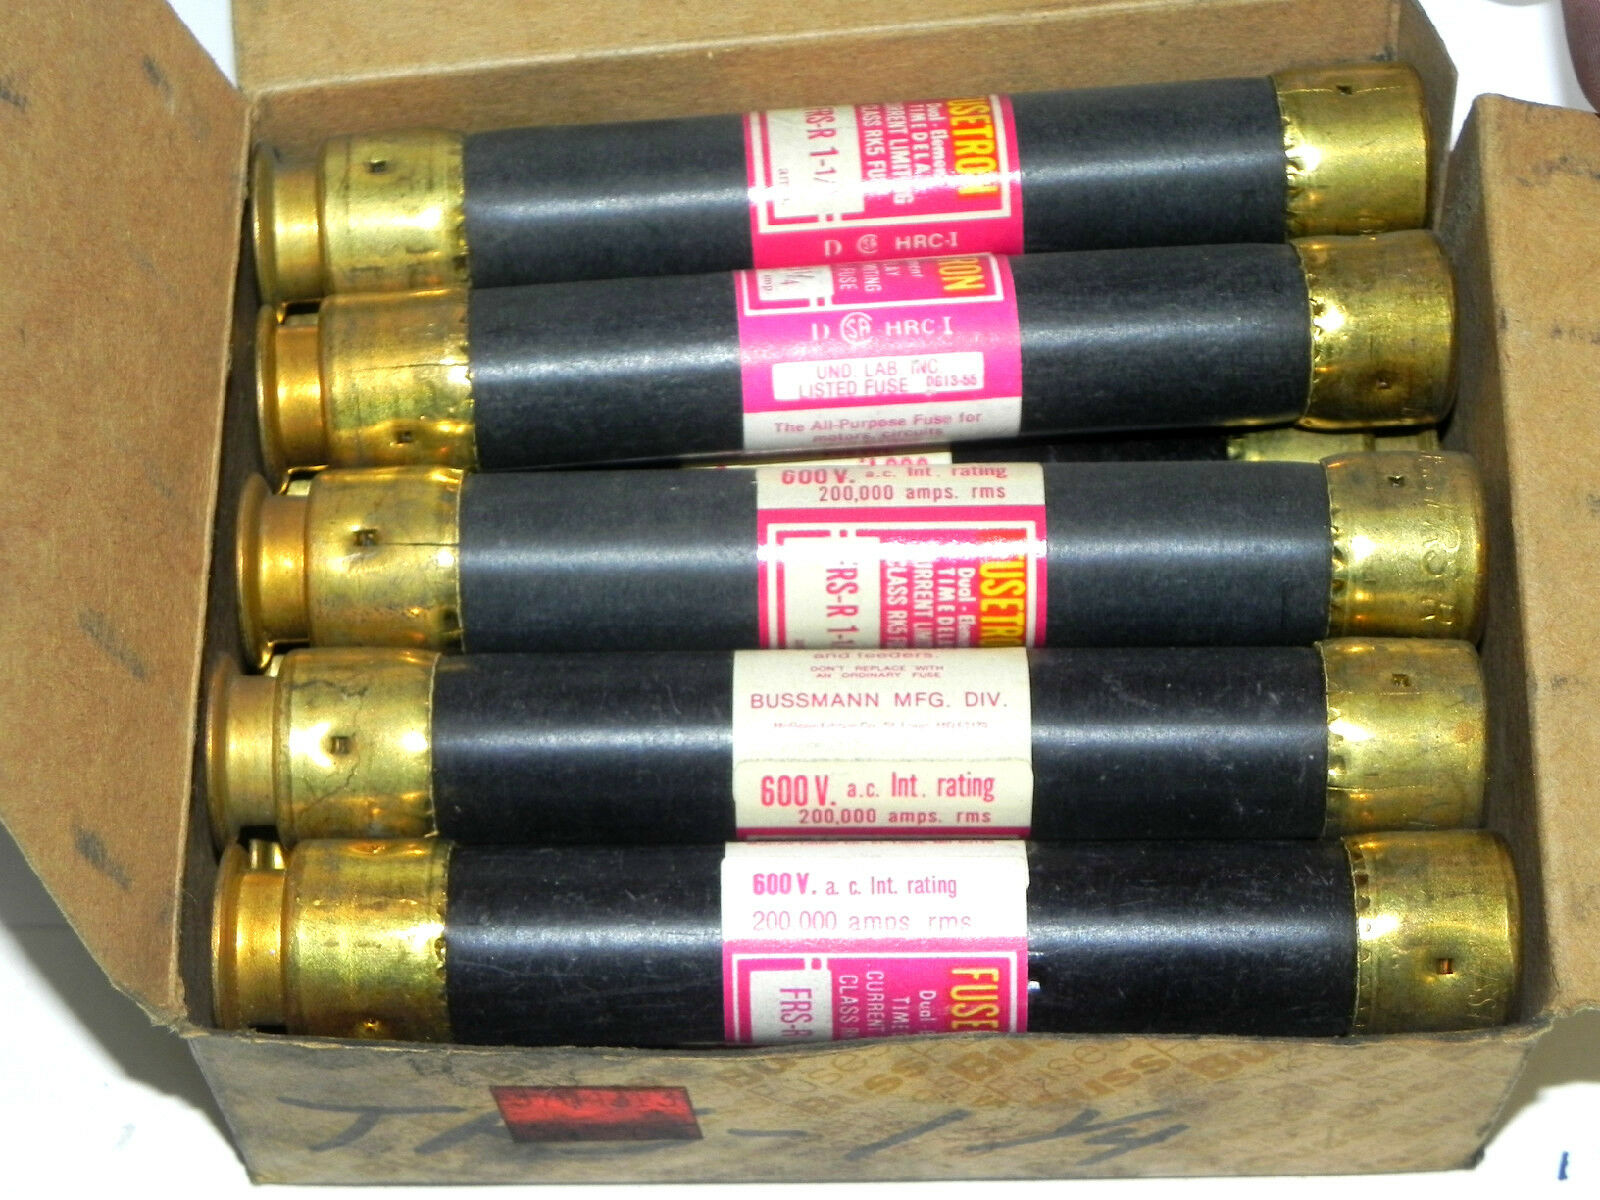 Box Of 10 Bussmann Fusetron Frs R 1 4 Fuses 125amp 600v Class Rk5 125 Amp Fuse 2only Available